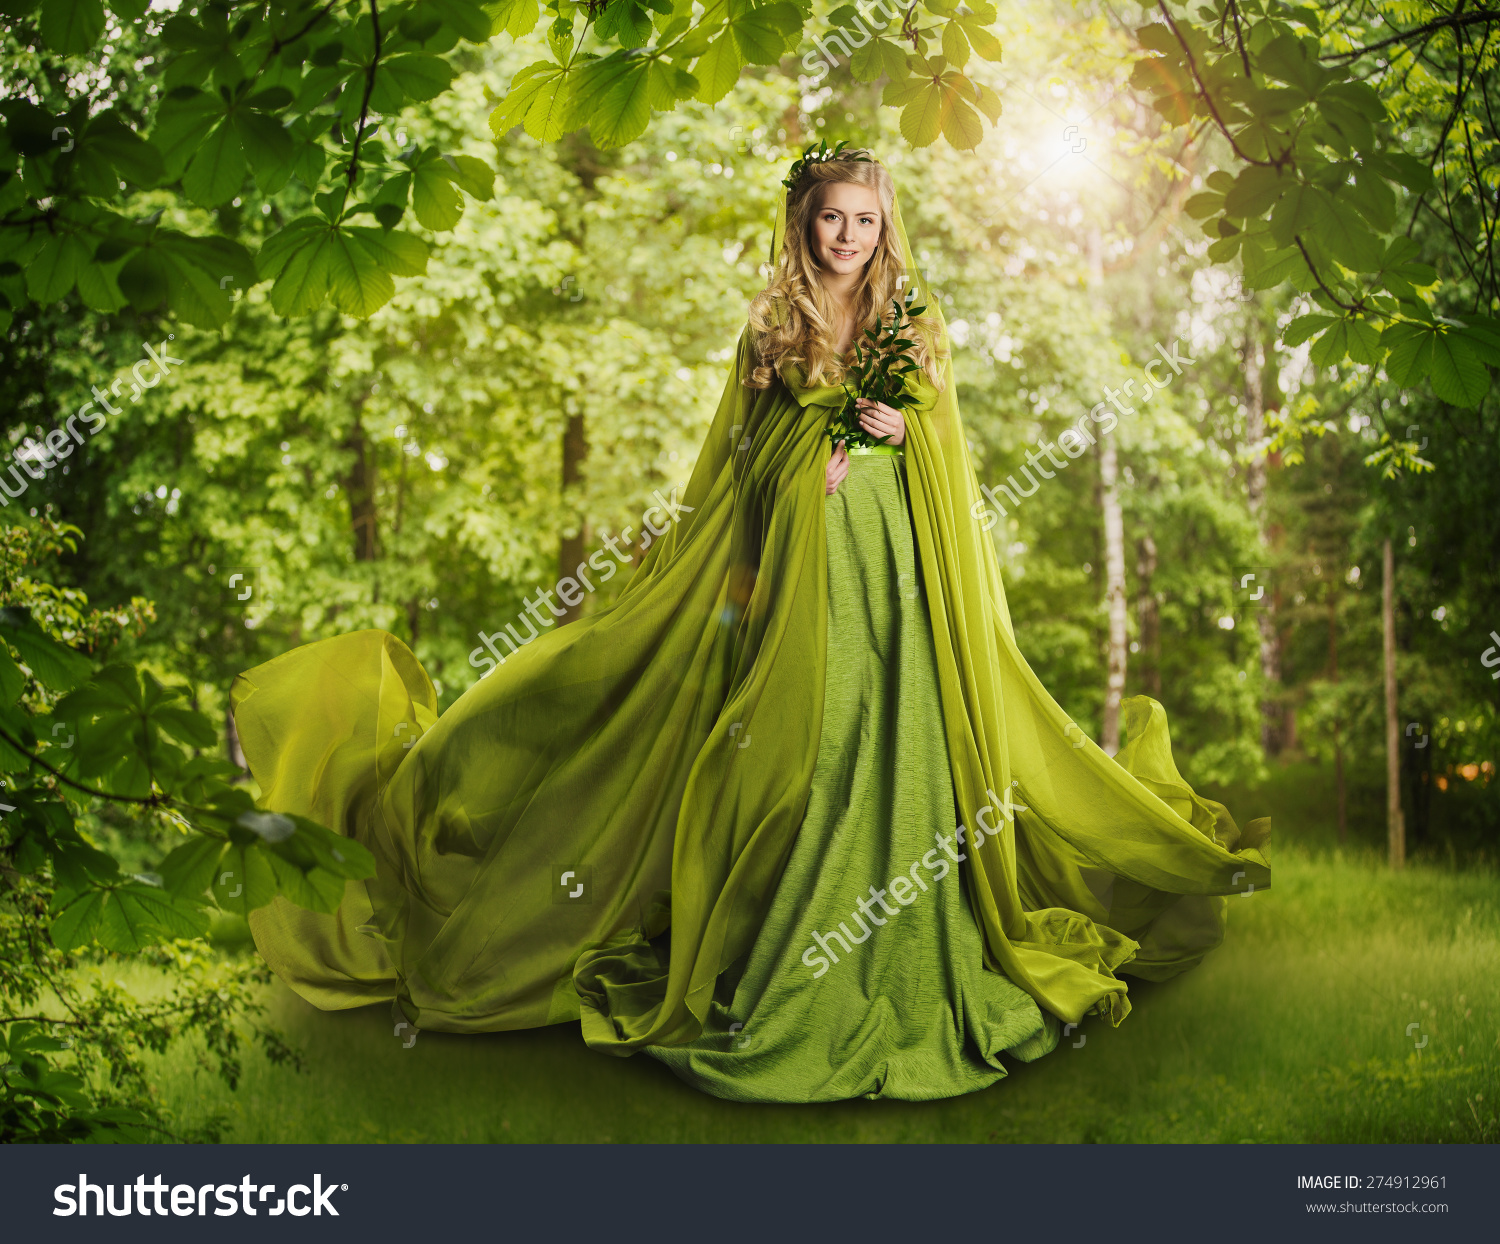 Fantasy Fairy Tale Forest Fairytale Nature Stock Photo 274912961.